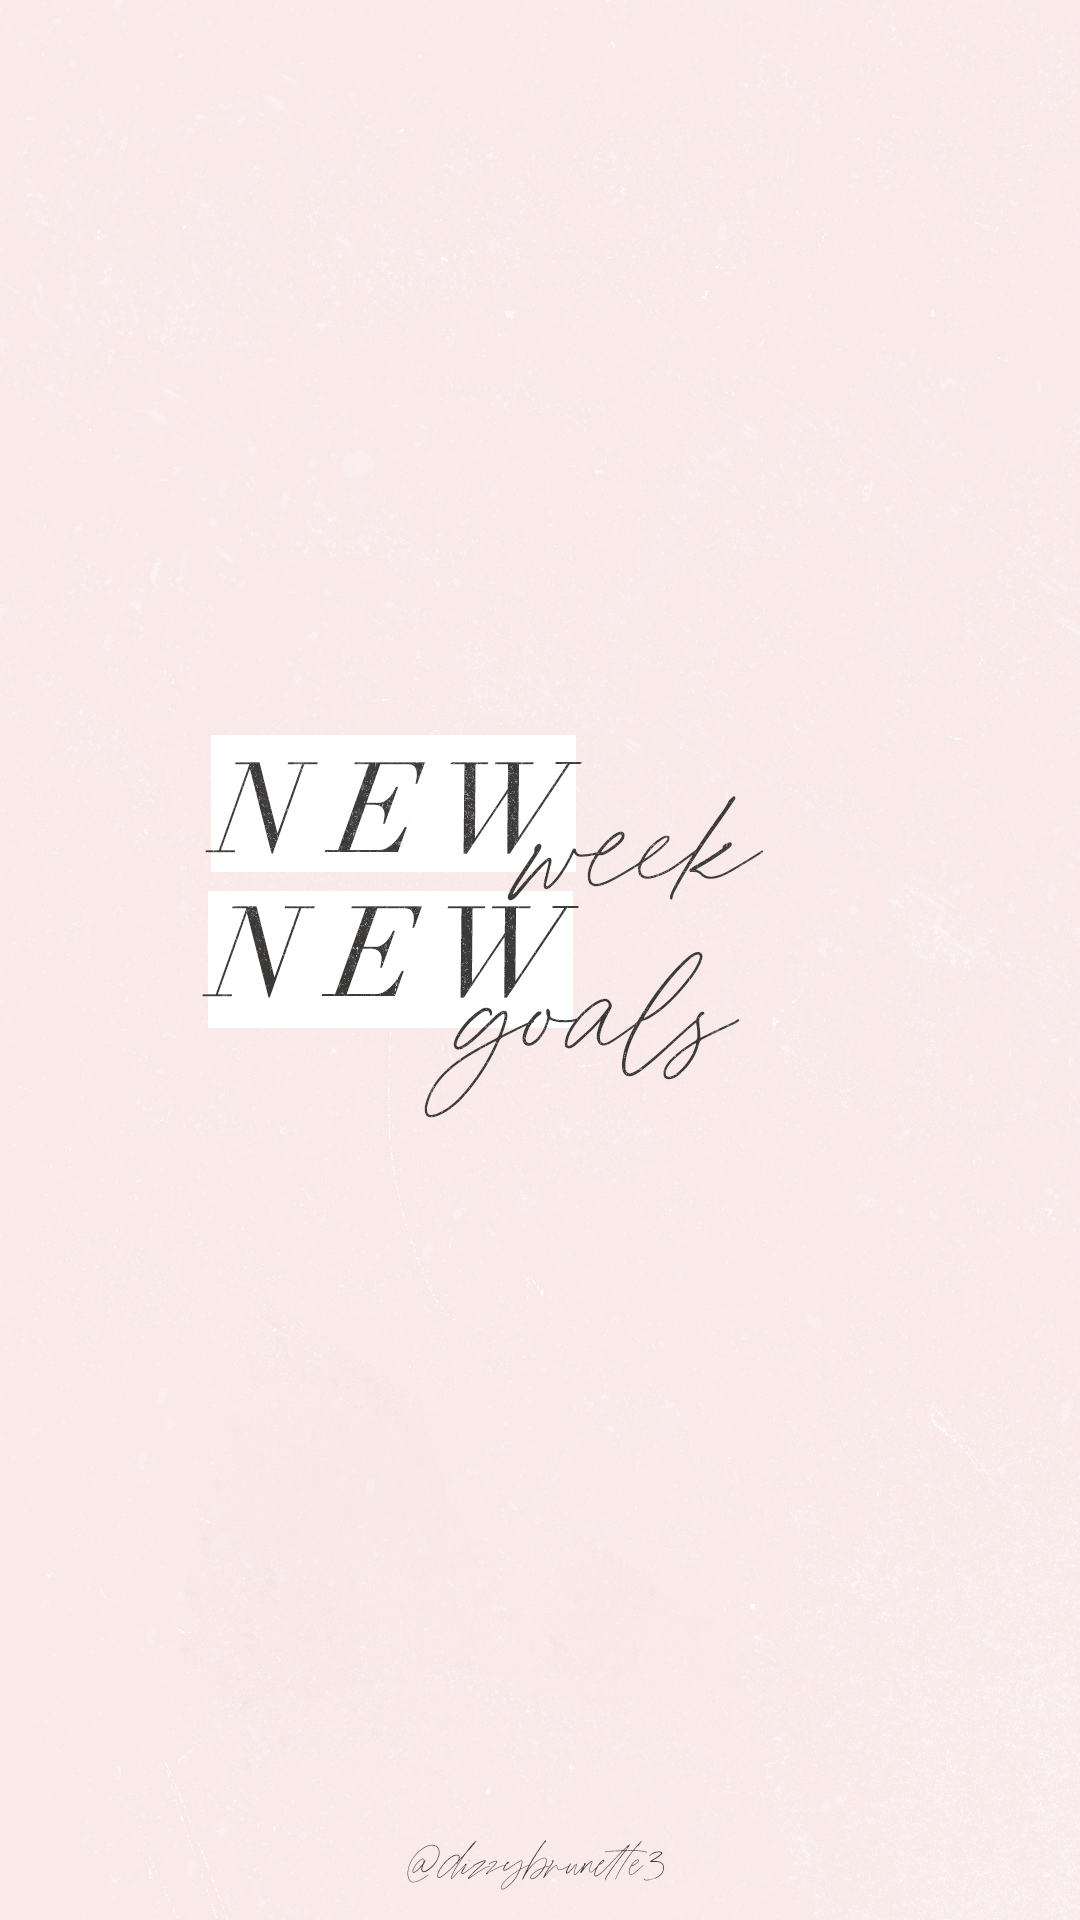 Free Downloadable Phone Wallpapers - January 2020 - Dizzybrunette